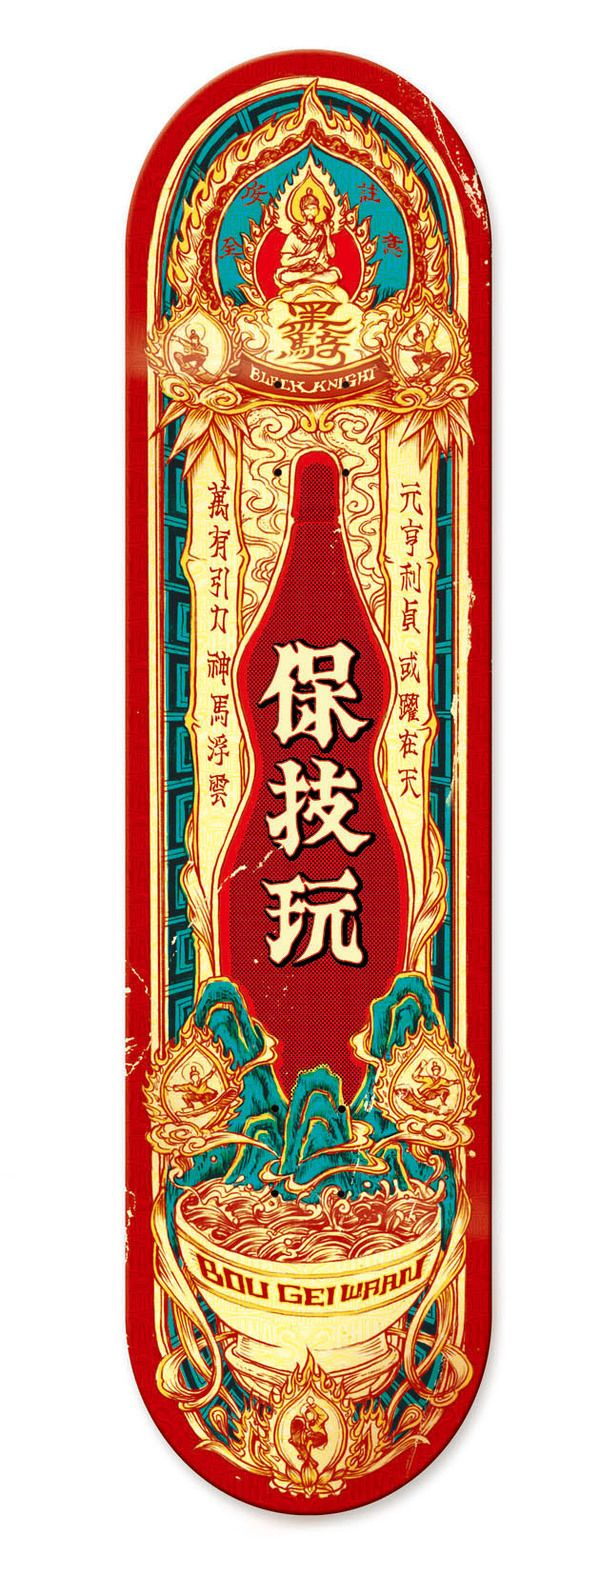 Chinese designer Zhan Wei designed and illustrated a series of skateboards graphics that are inspired by Chinese medicine packaging designs.